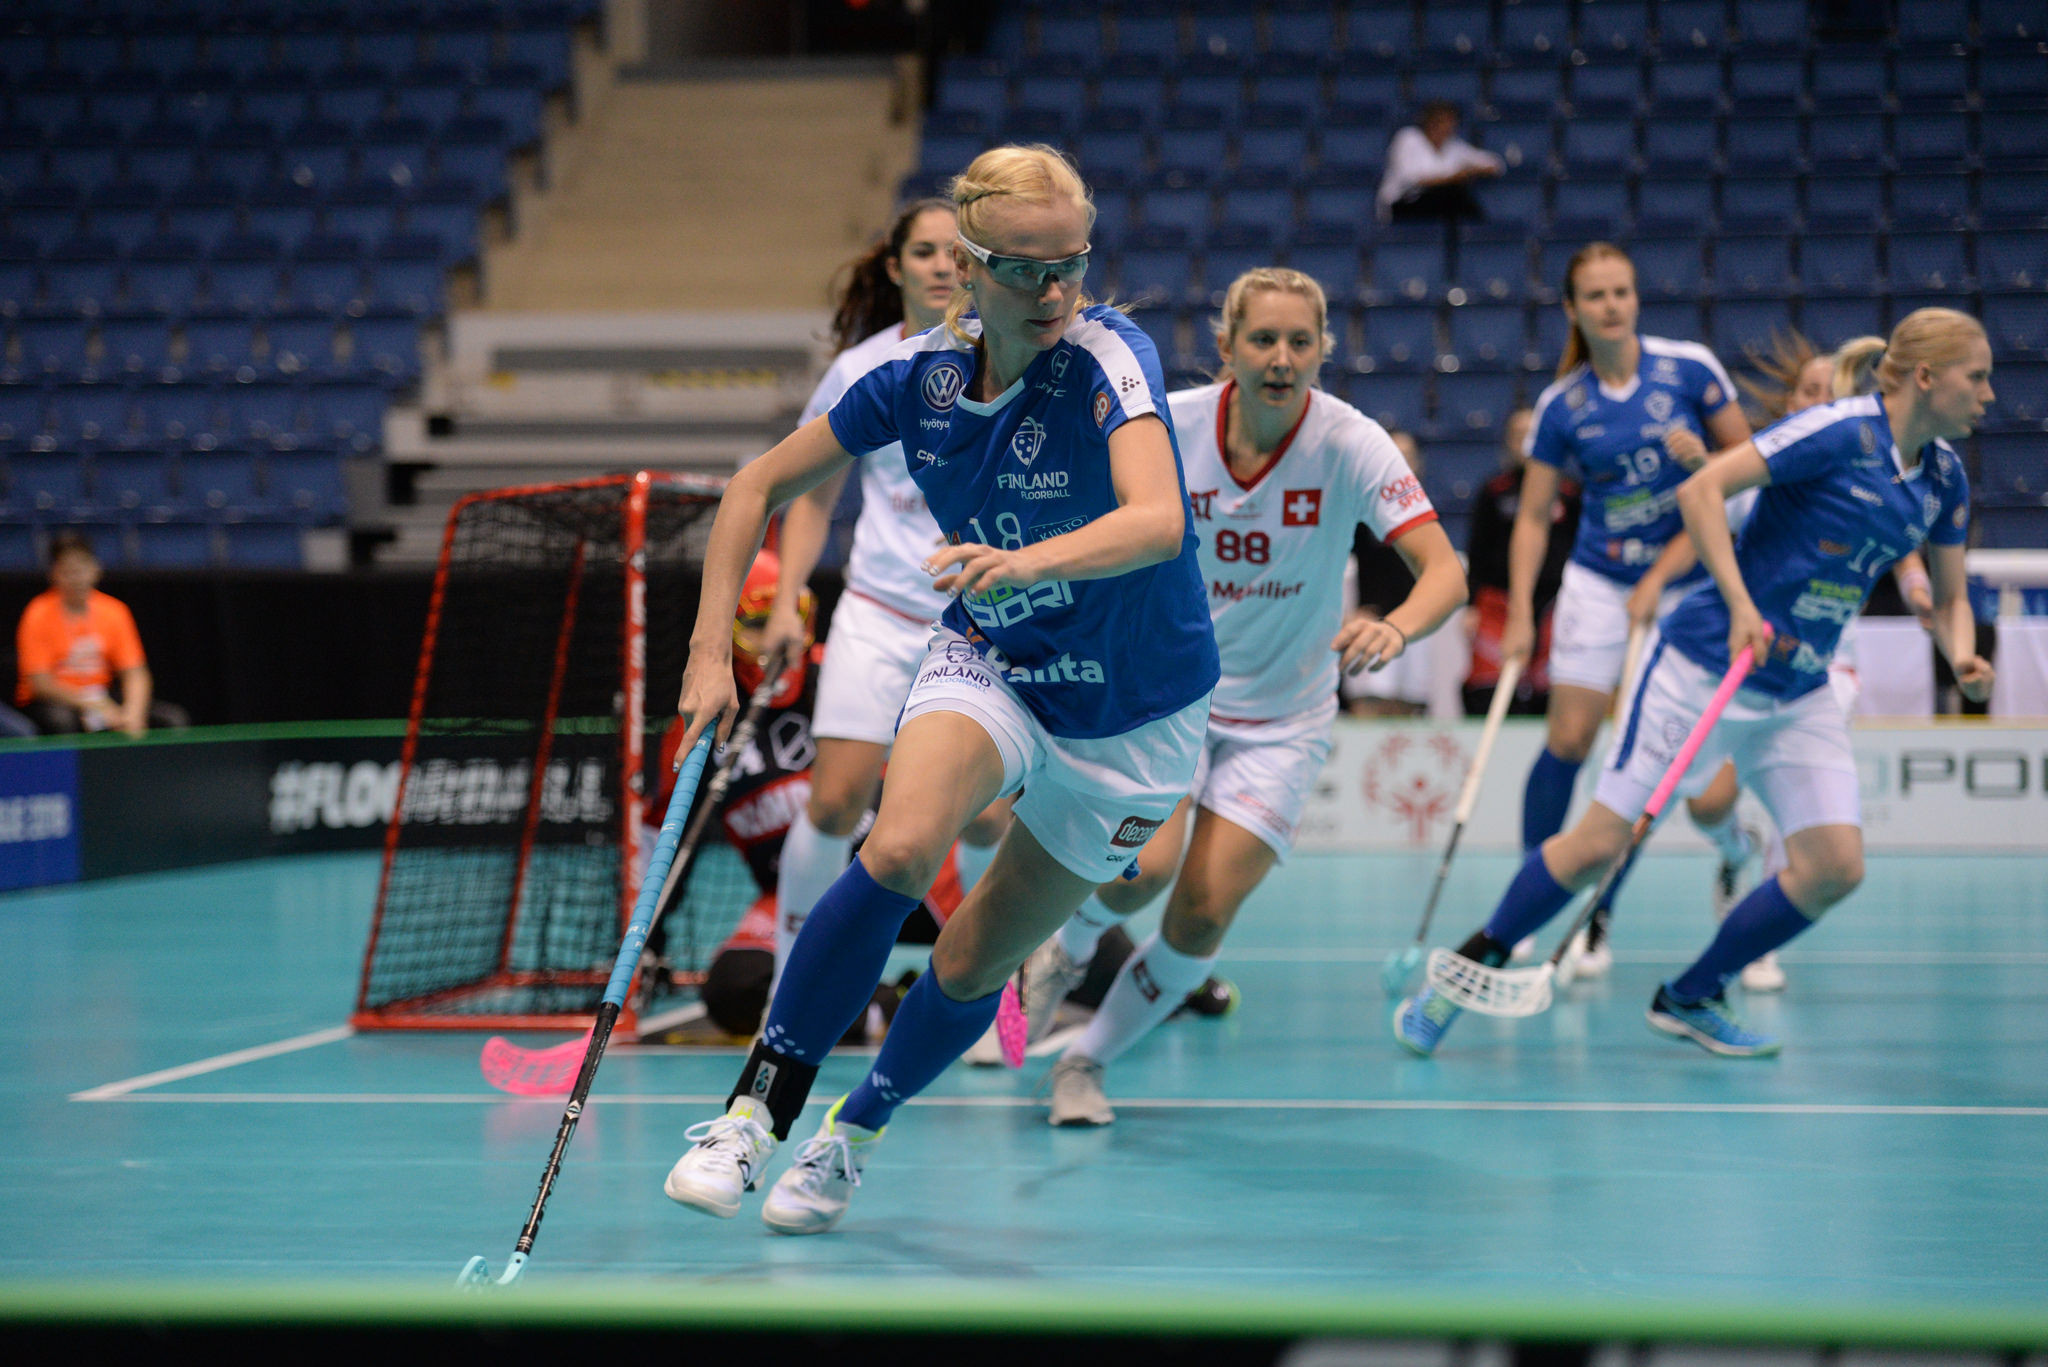 Finland and Sweden to contest Women's World Floorball Championship final